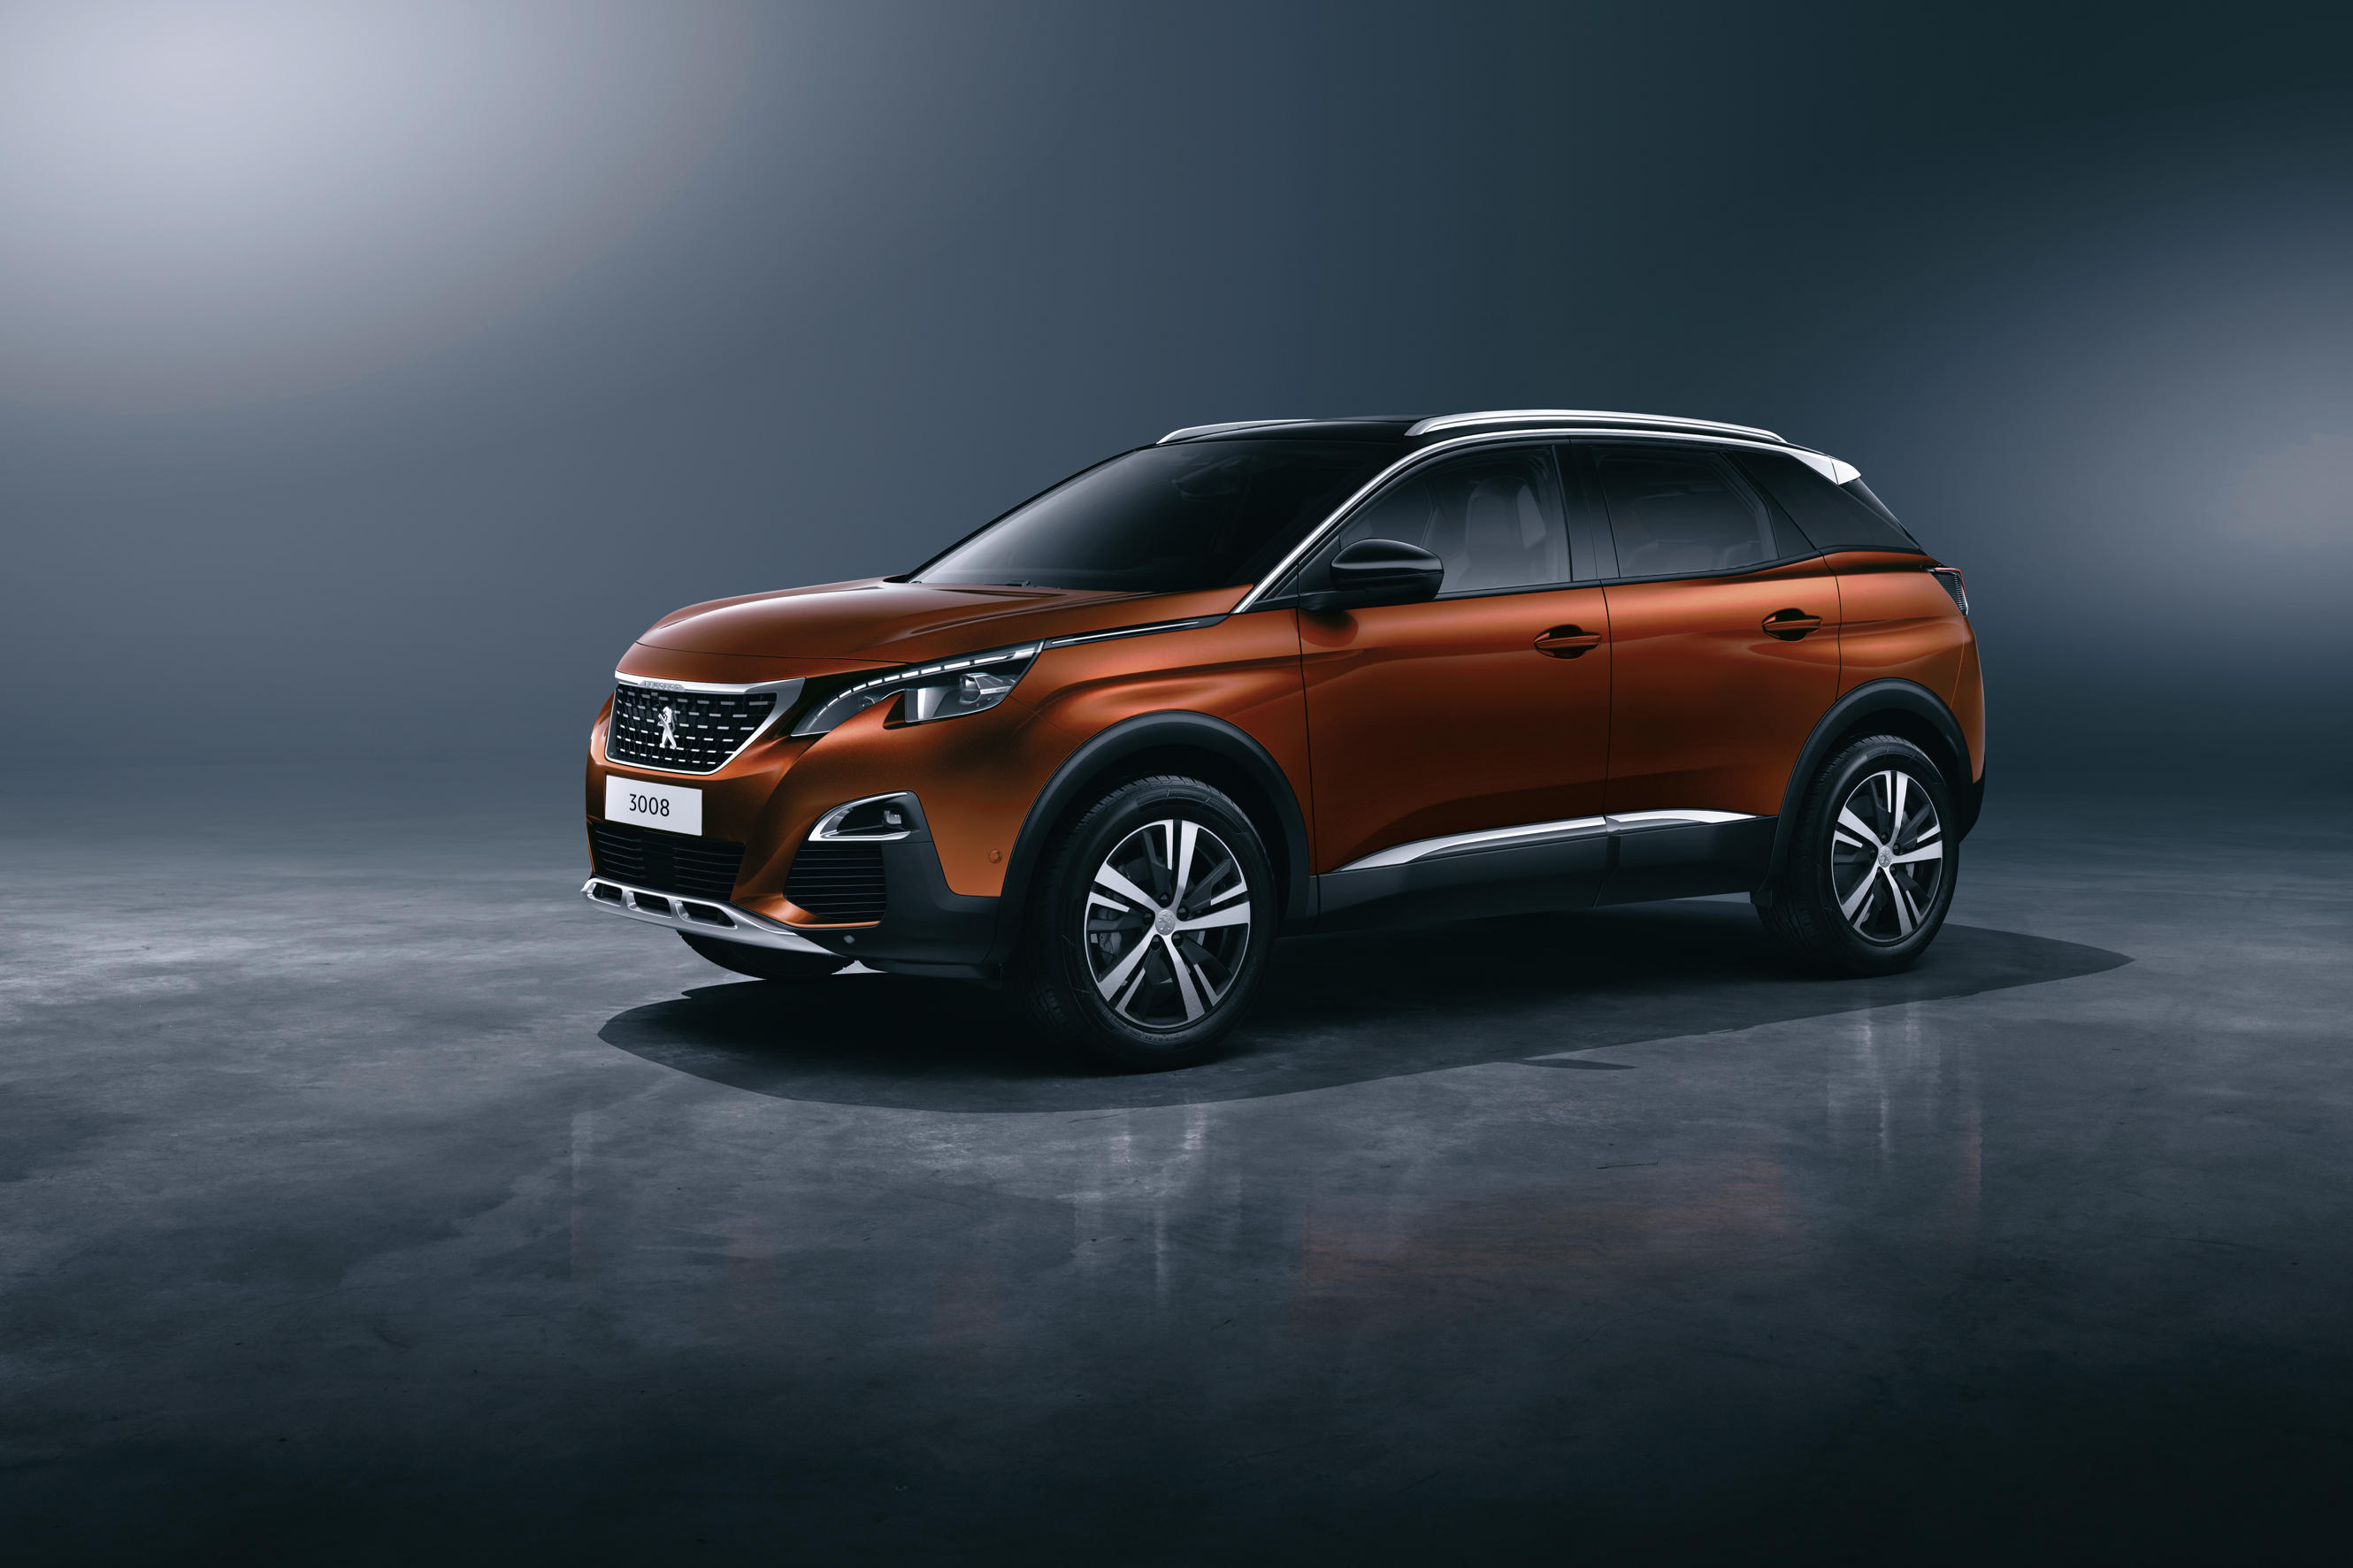 The Motoring World The Peugeot 3008 takes the main Car of the year